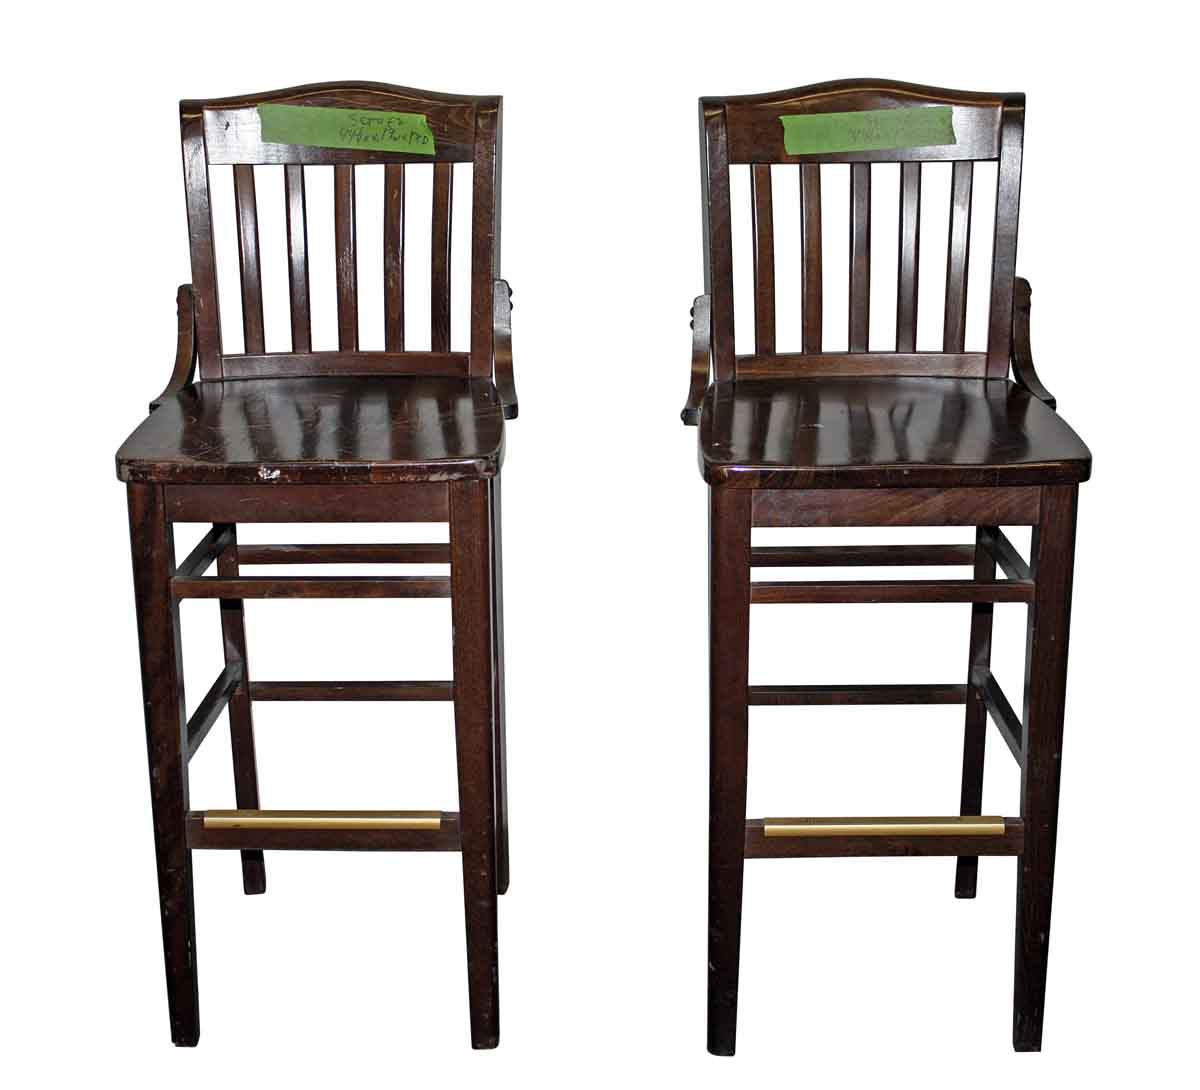 High Stool with Slatted Back